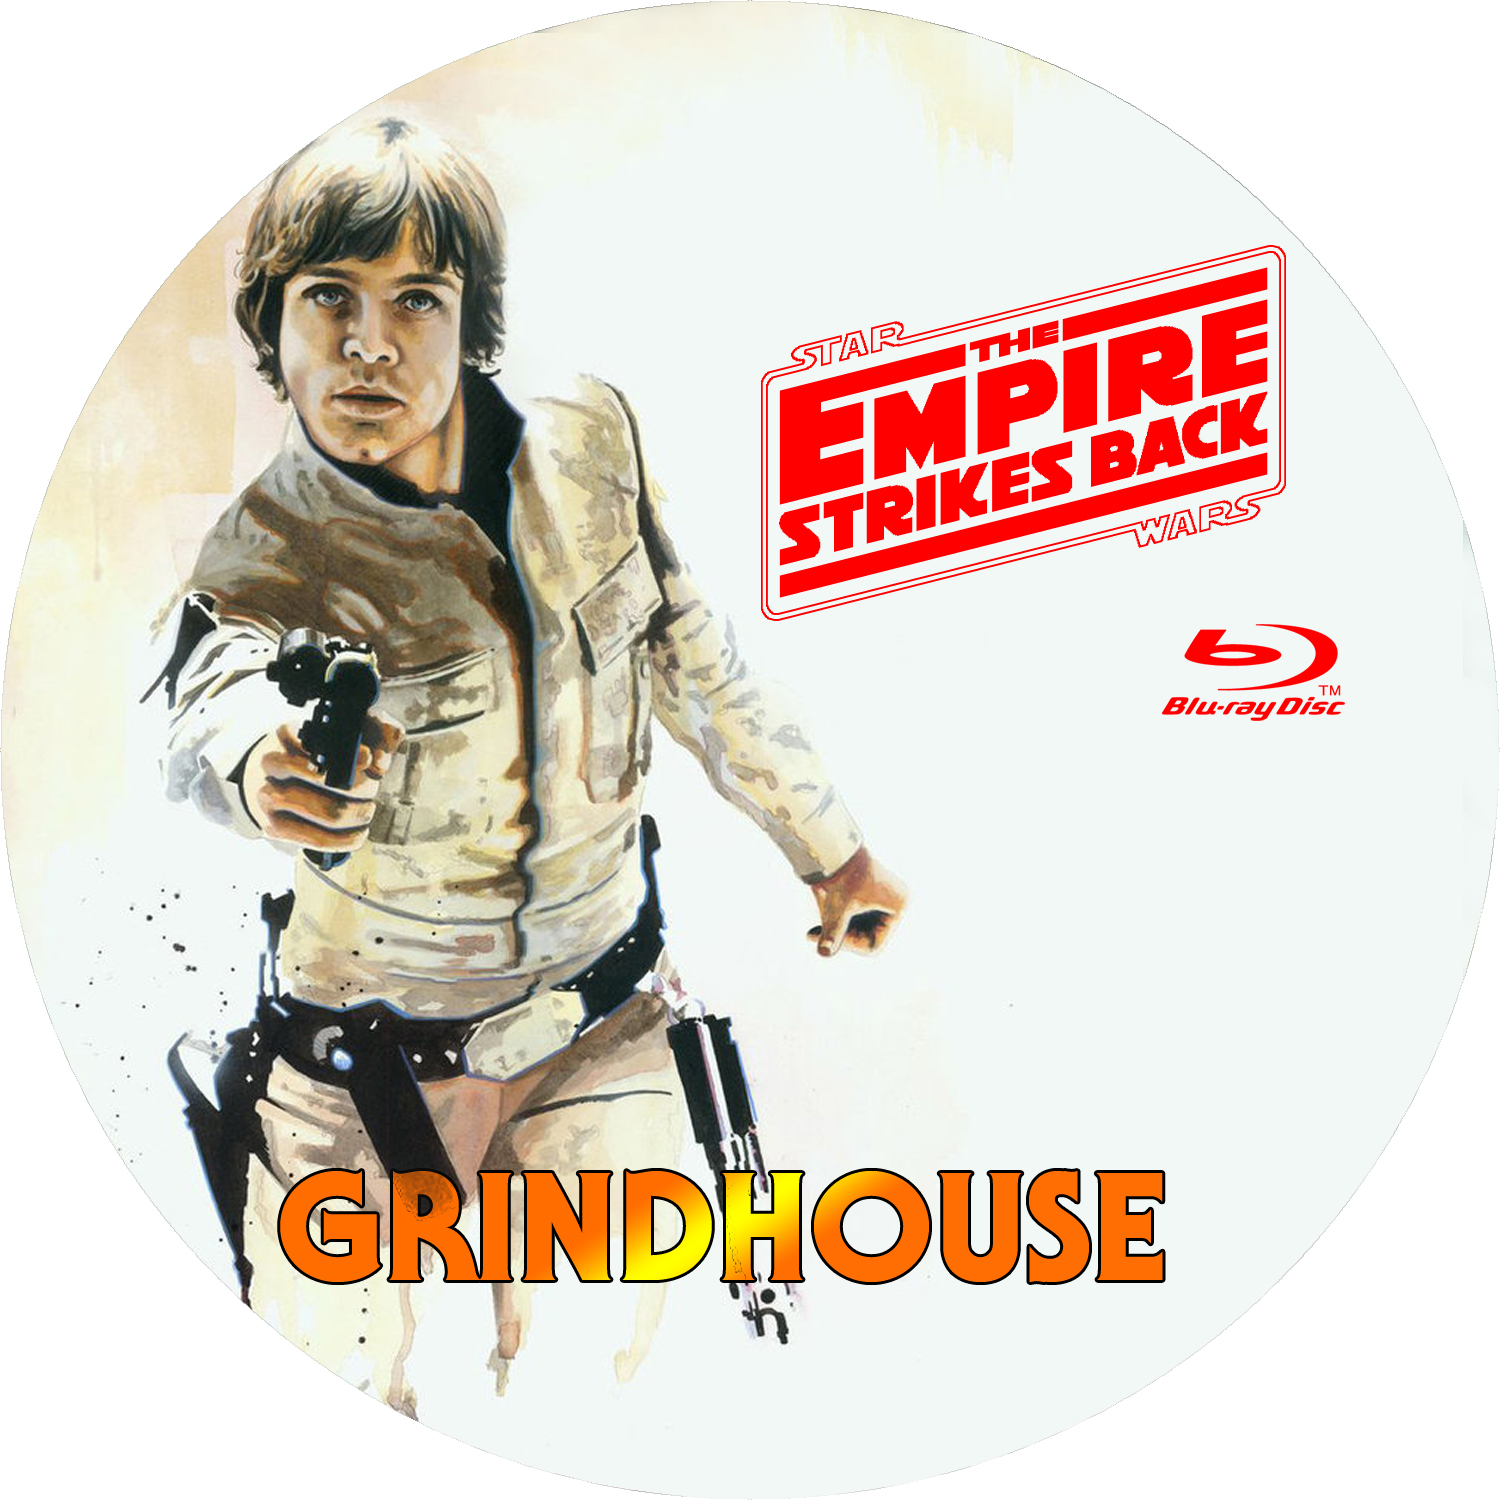 Grindhouse trilogy 3-in-1/ matching individual covers/labels